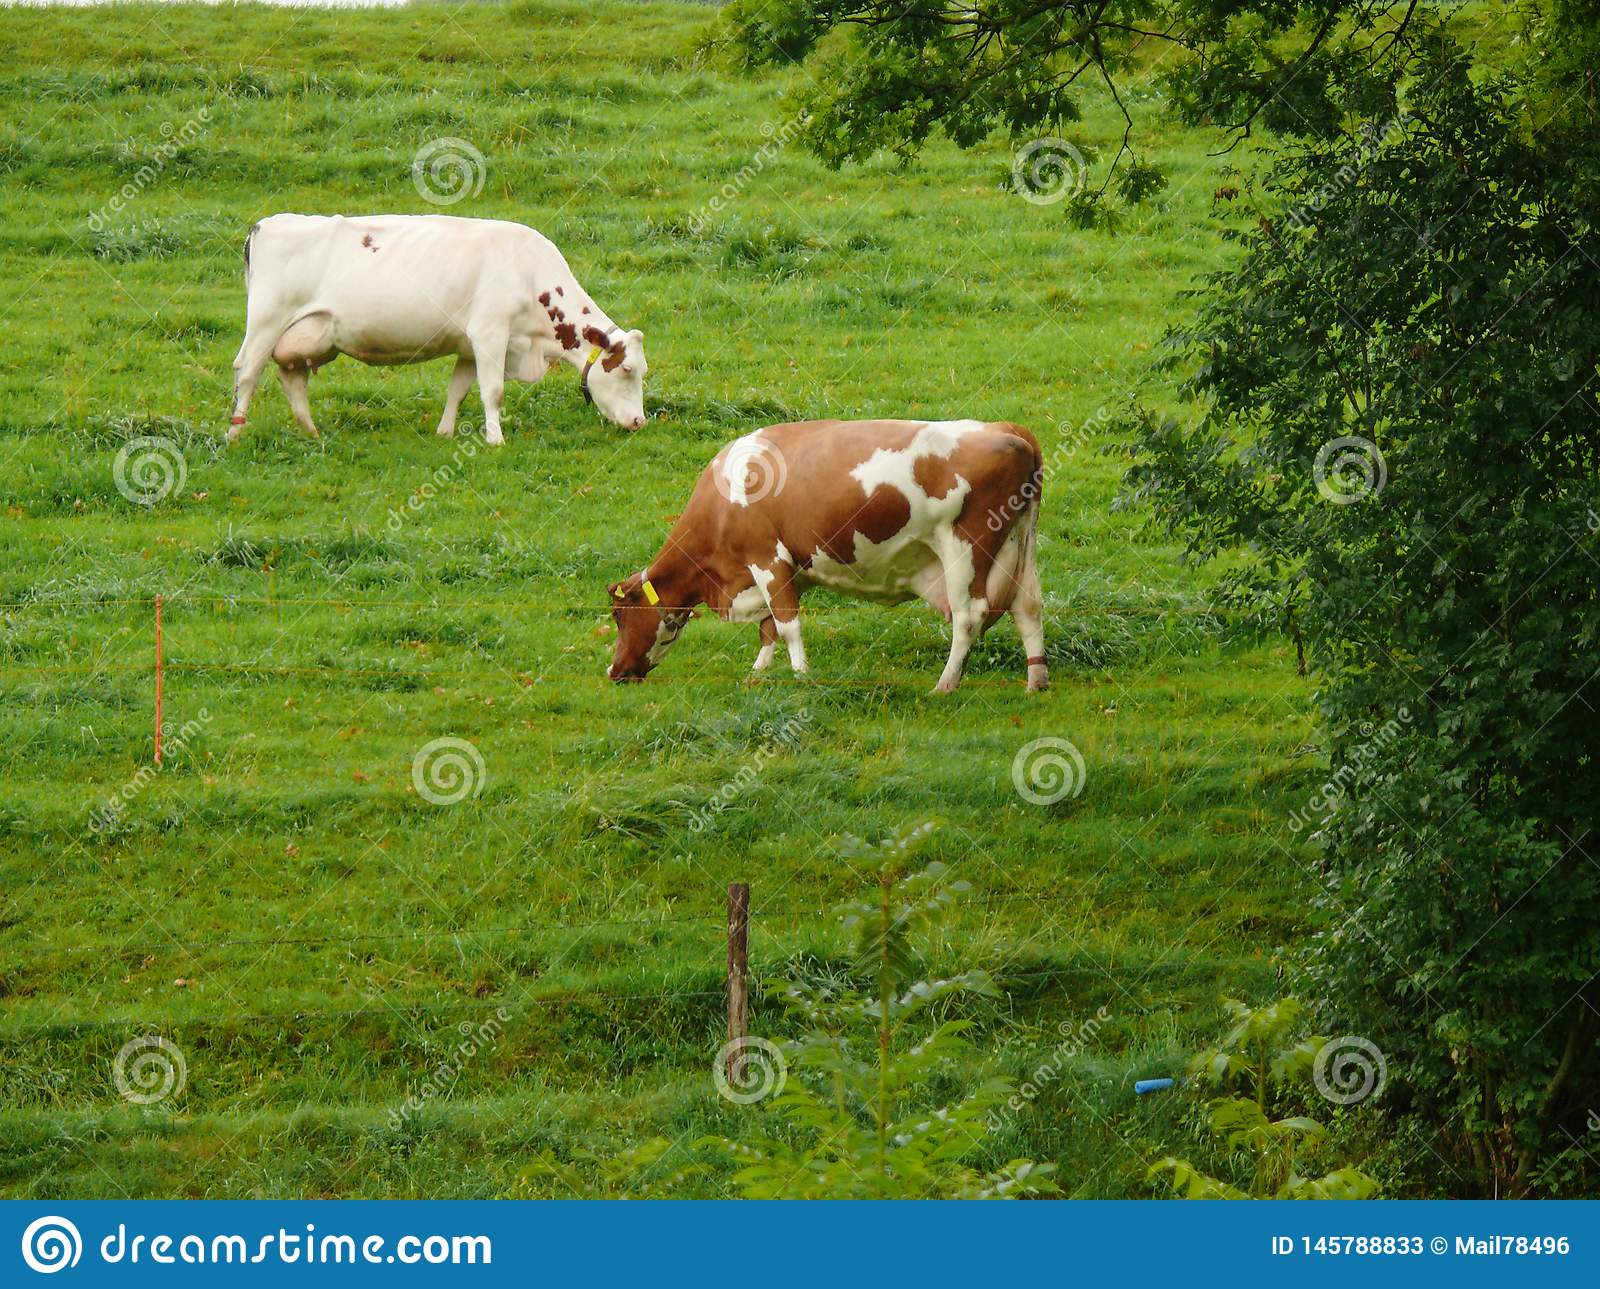 Cows grazing on a green hill